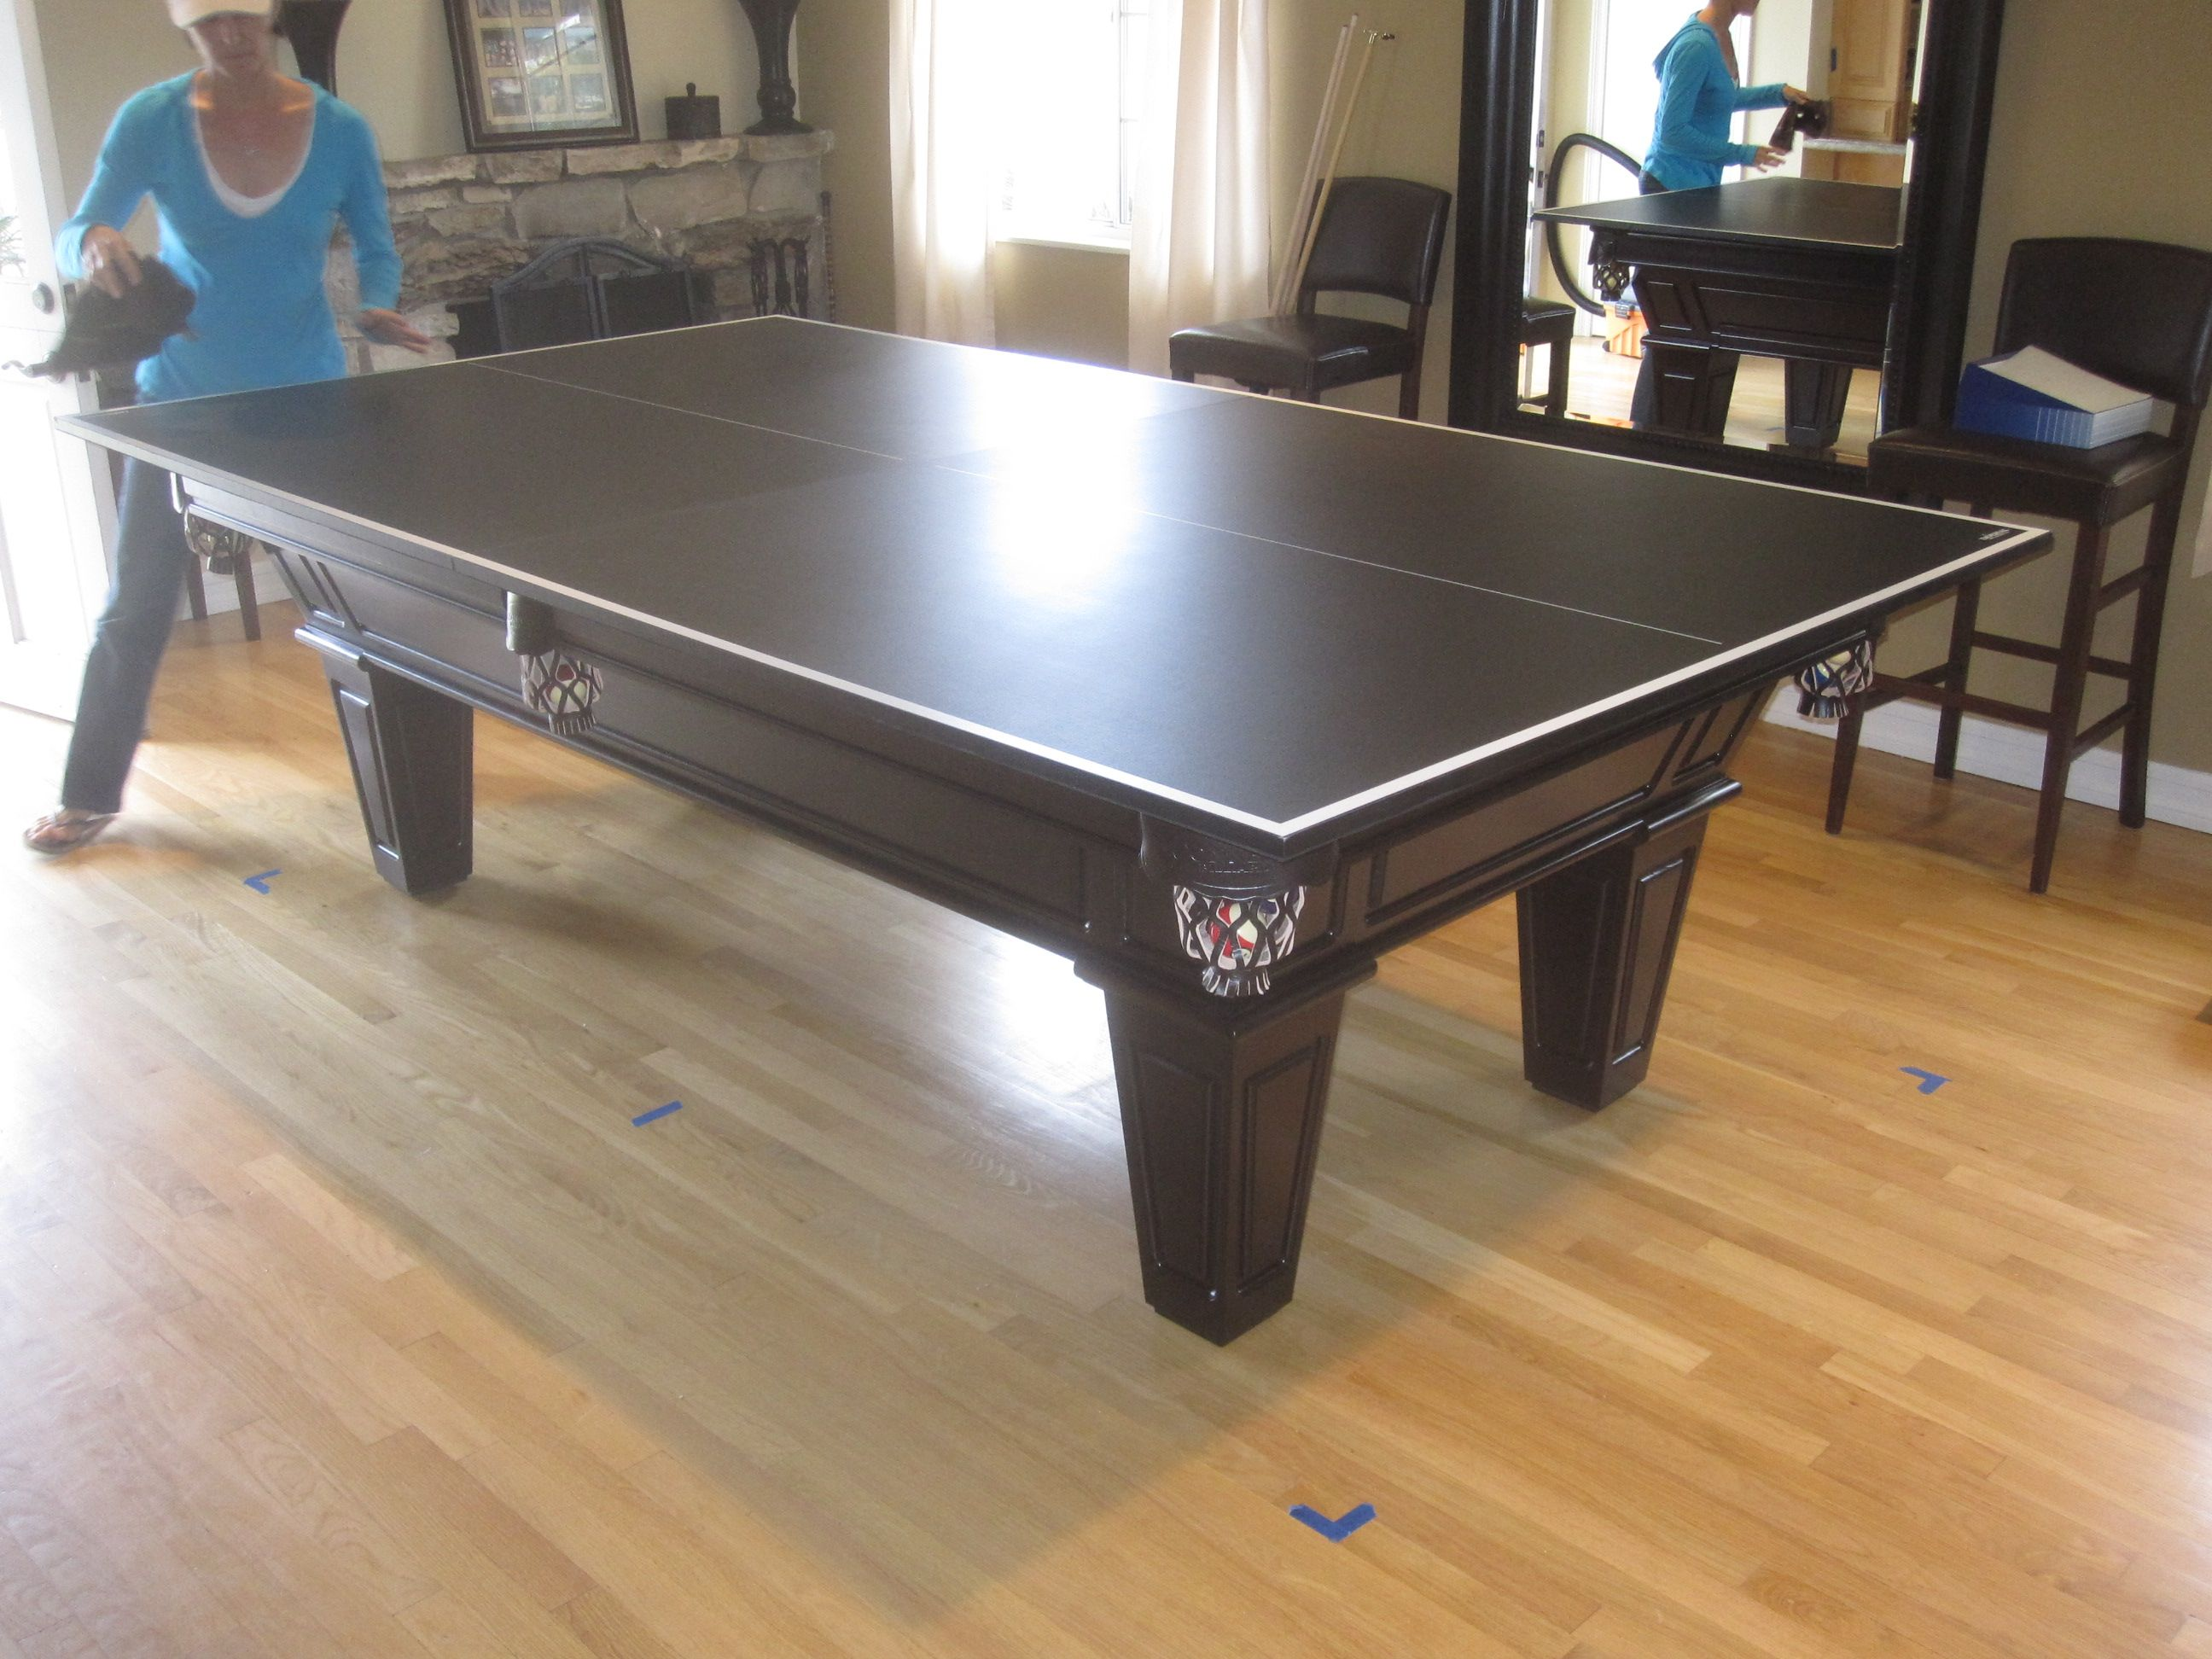 Cool Ping Pong Table Top For Pool Table About Remodel Inspirational Home  Designing With Ping Pong